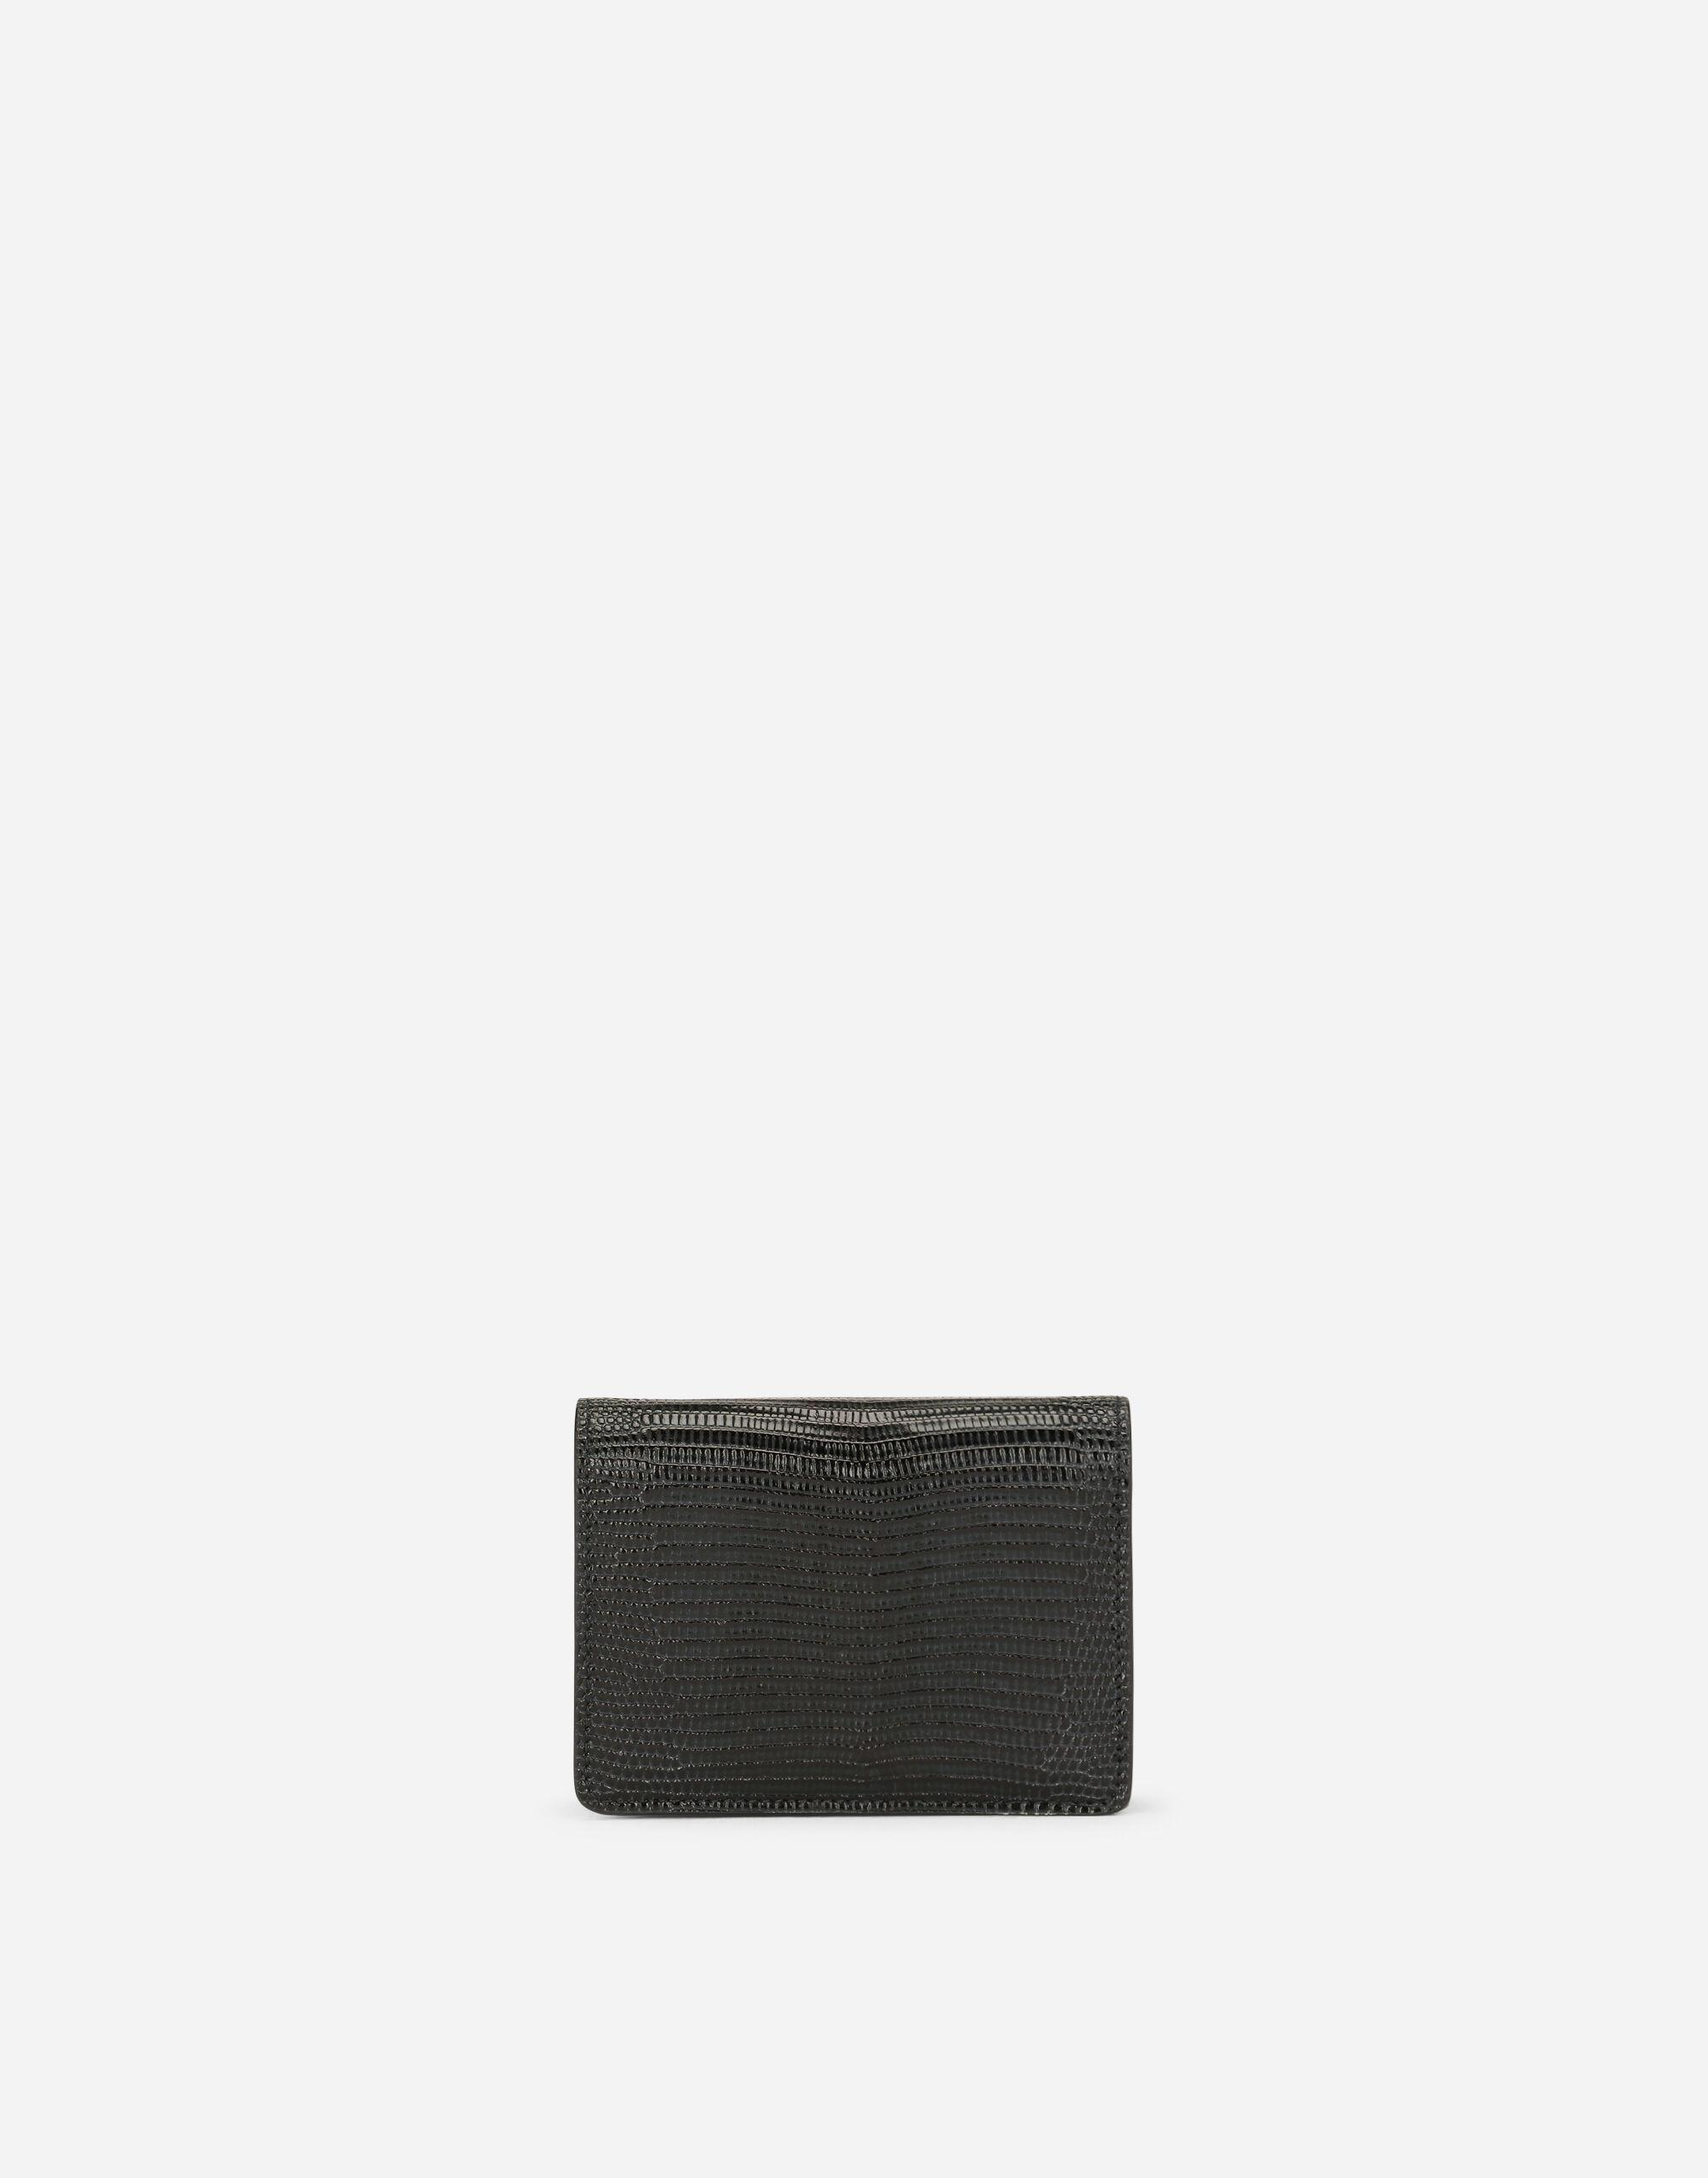 Small continental wallet in Dauphine calfskin with rhinestone-detailed DG logo 2